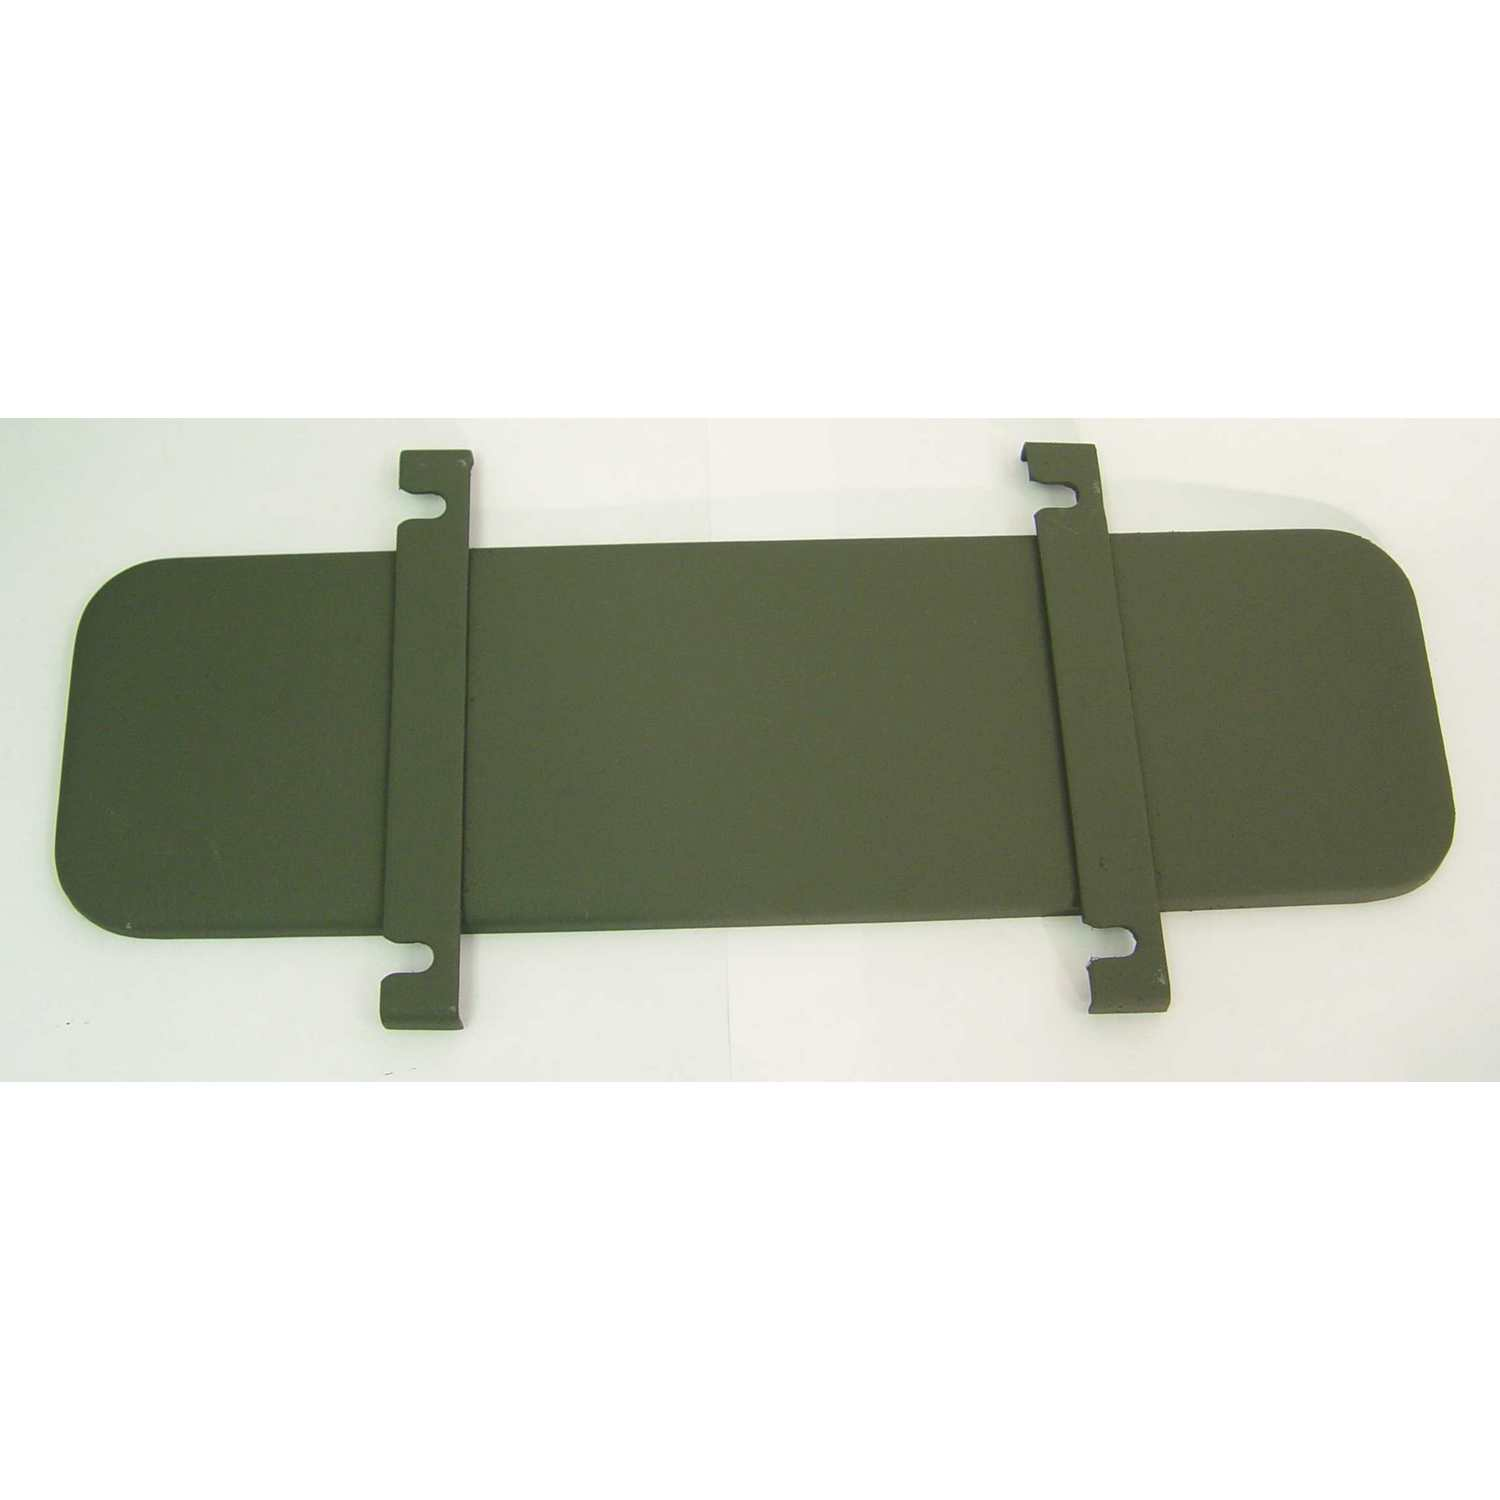 Windshield Frame Ventilator Cover